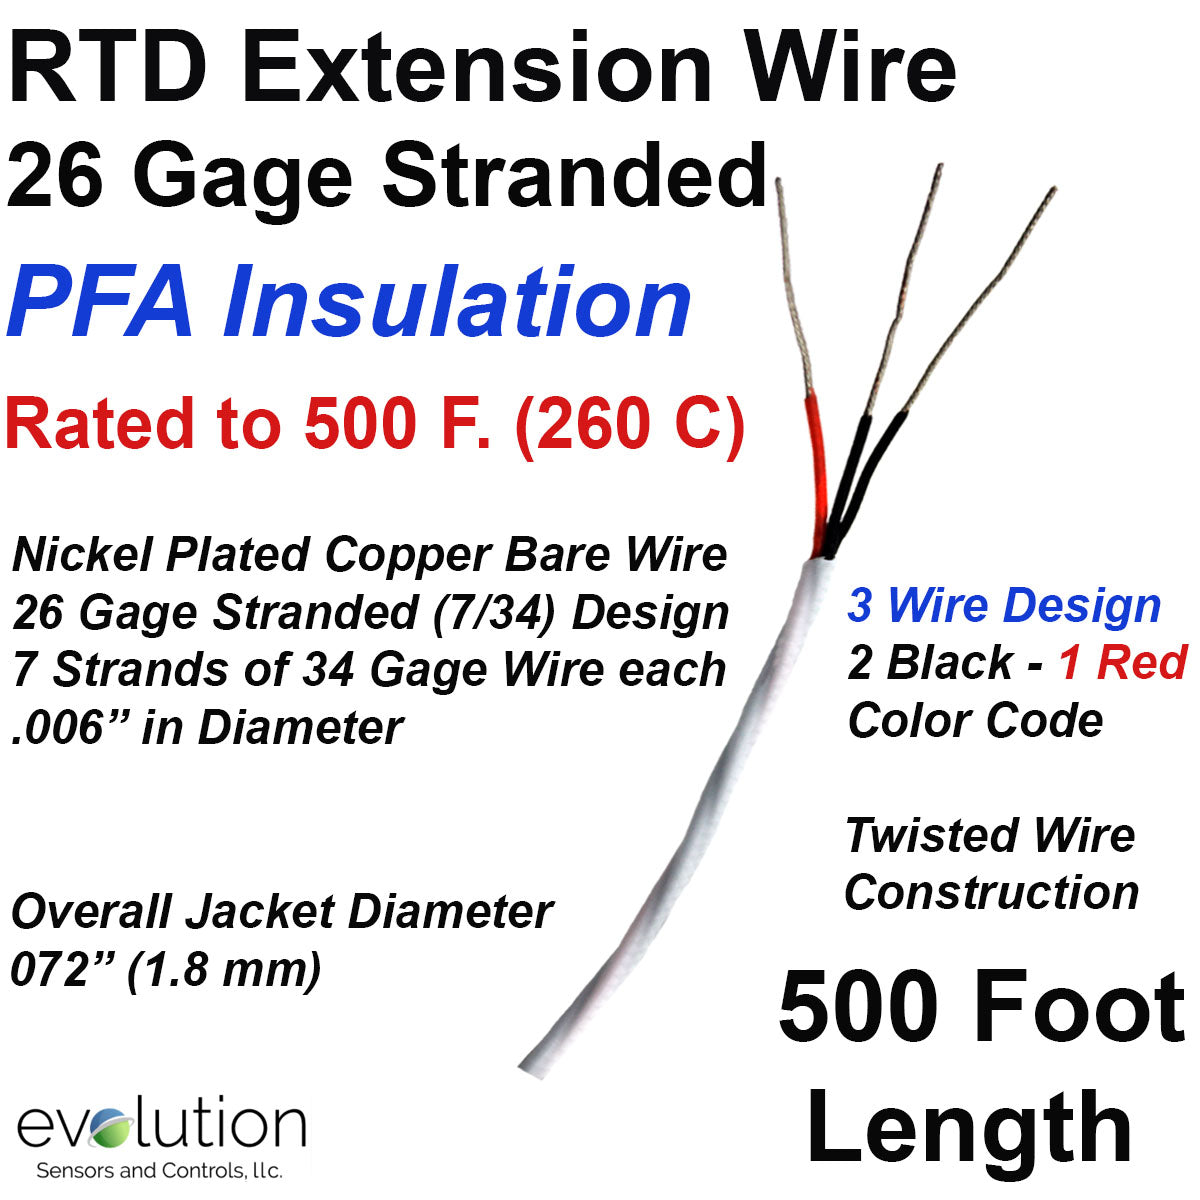 Rtd extension wire 500 foot length 26 gage stranded 3 wire design rtd extension wire 26 gage stranded 3 wire design pfa insulated 500 ft long keyboard keysfo Choice Image